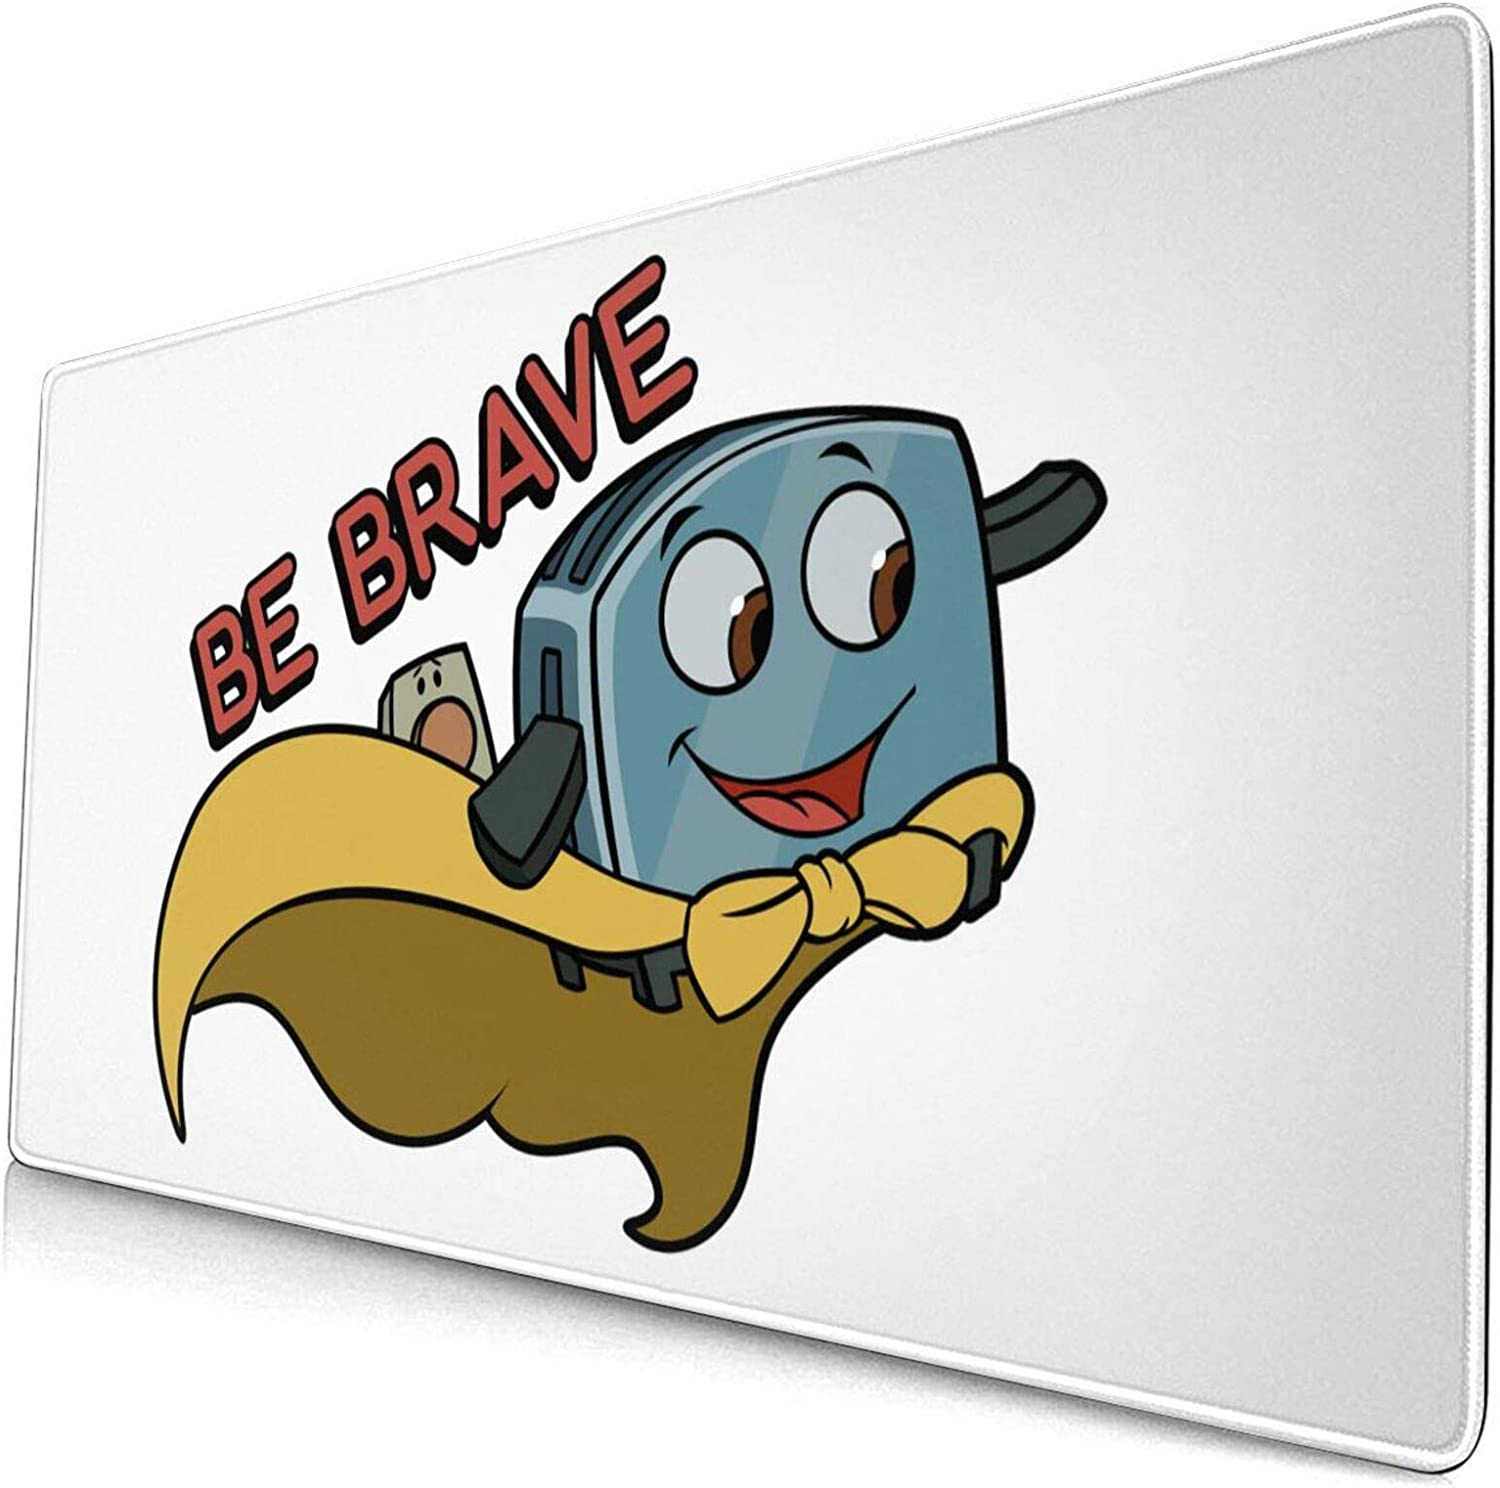 Be Brave Little Toaster Large Game Mouse Pad, Non Slip Rubber Base, Office and Home(40x75cm)